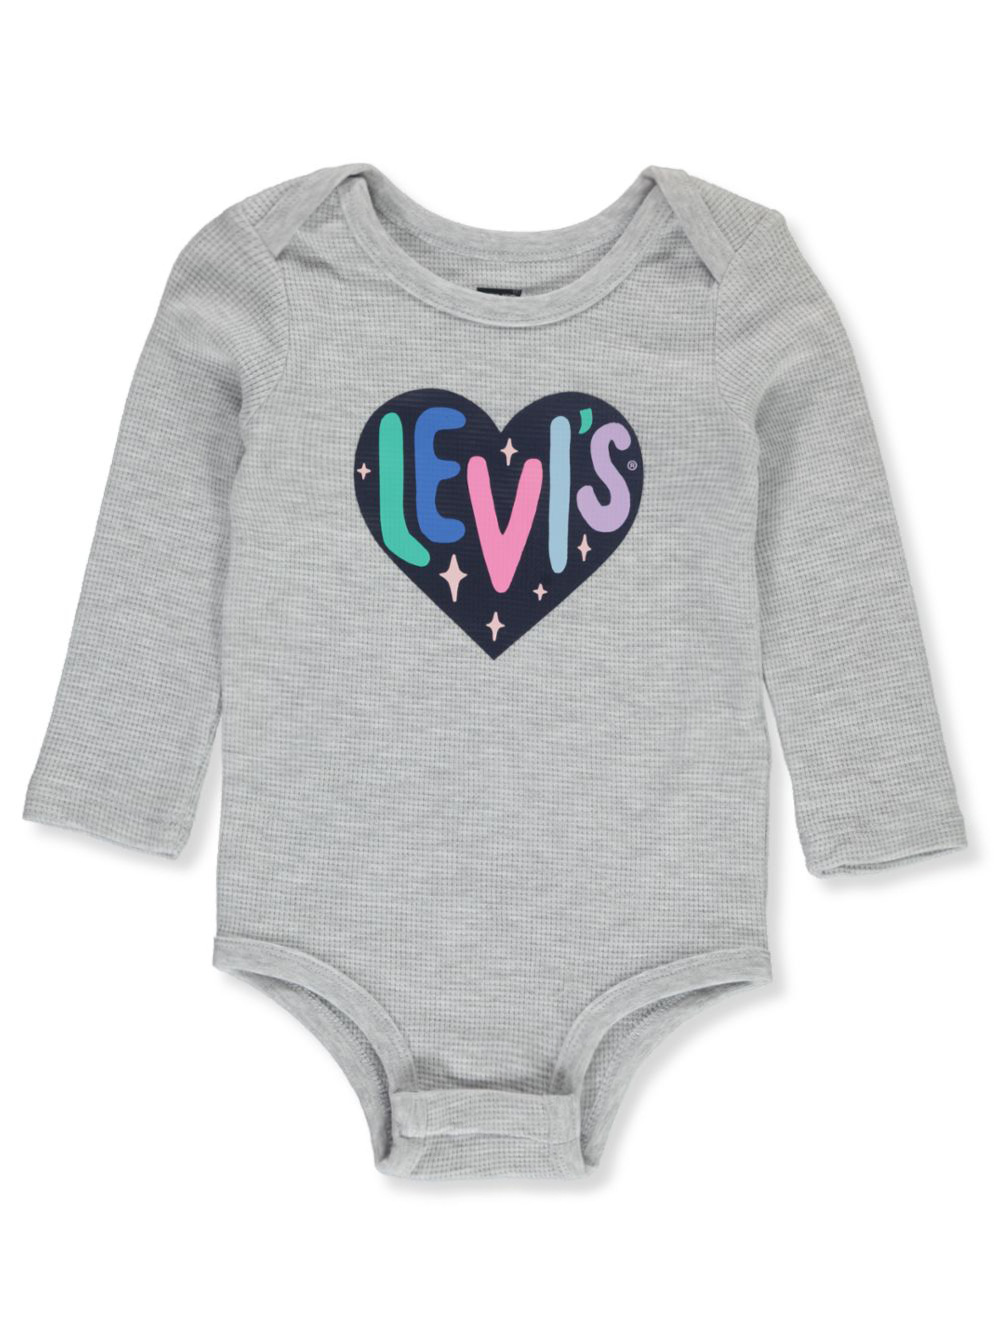 Girls Gray Bodysuits